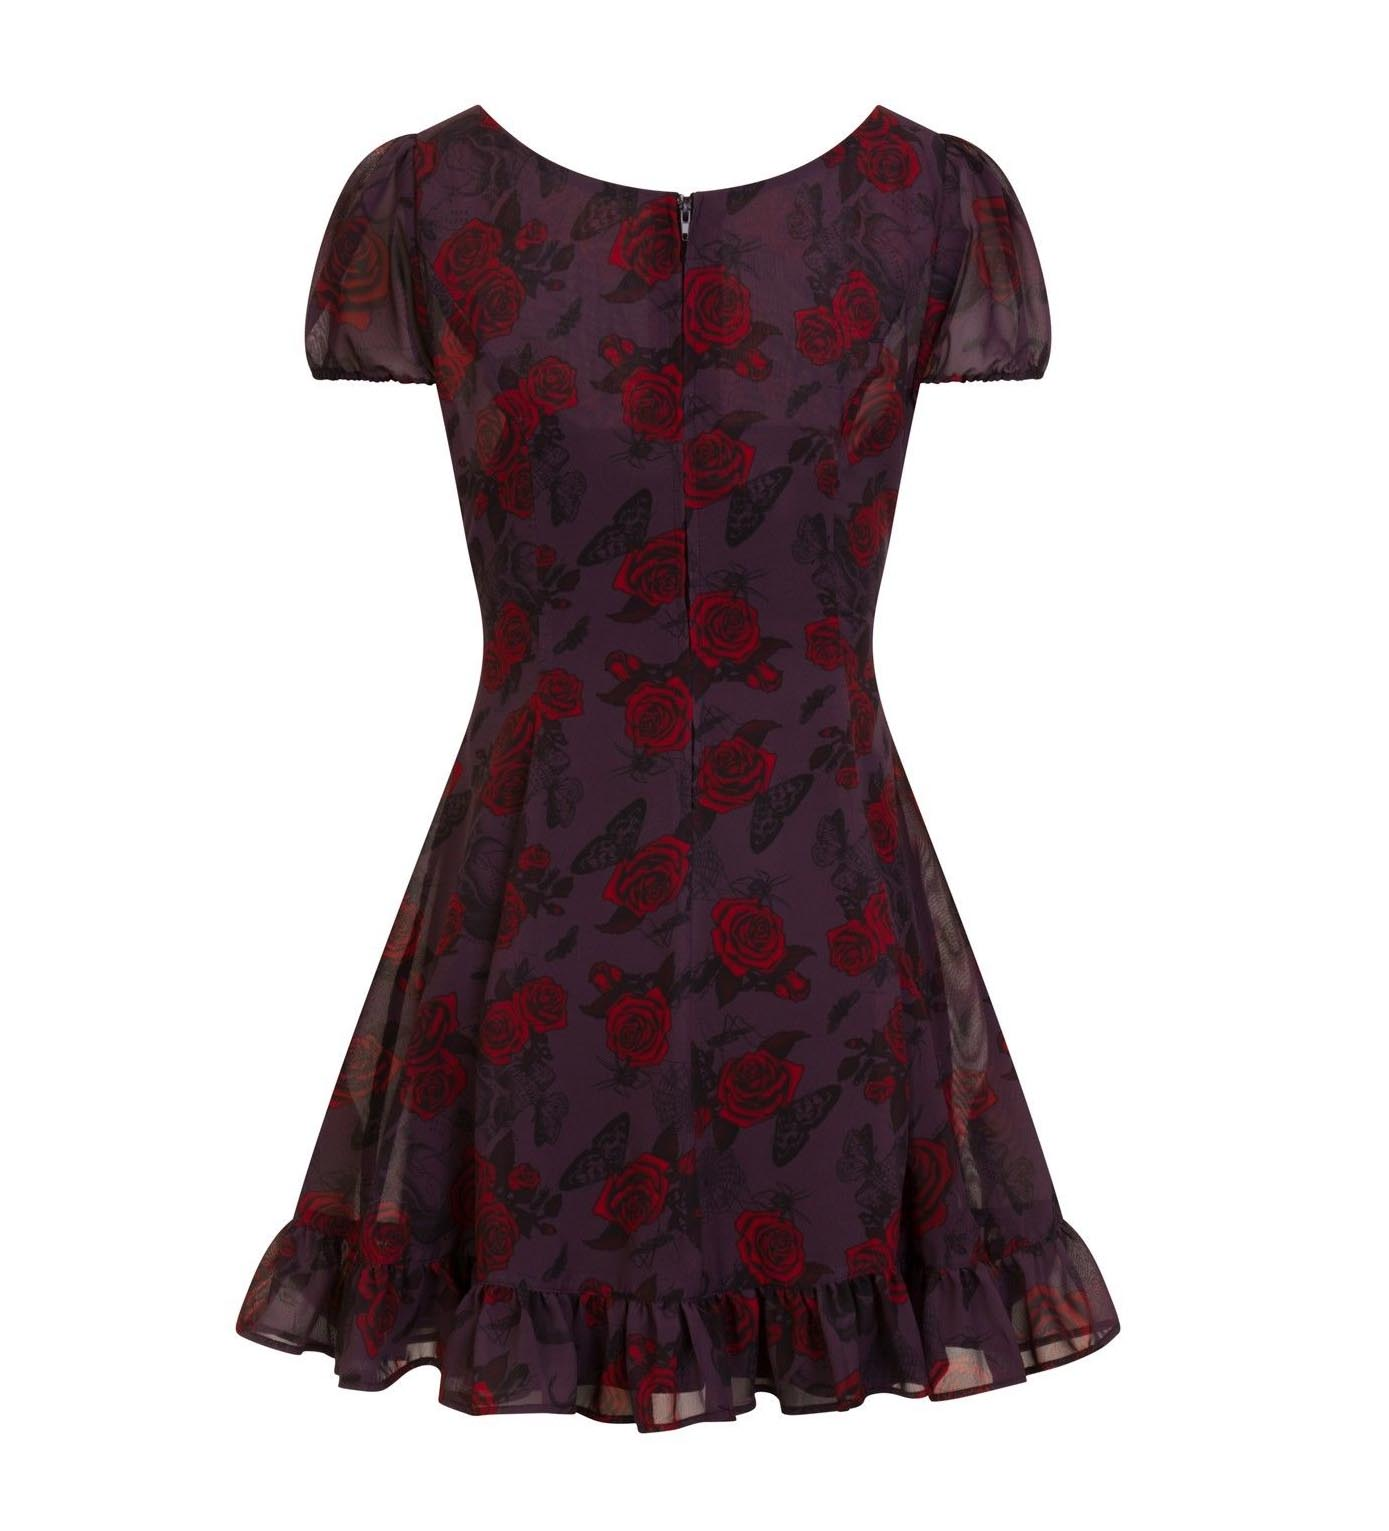 Hell-Bunny-Goth-Floaty-Mini-Dress-BUGS-amp-ROSES-Skulls-Butterfly-Purple-All-Sizes thumbnail 25